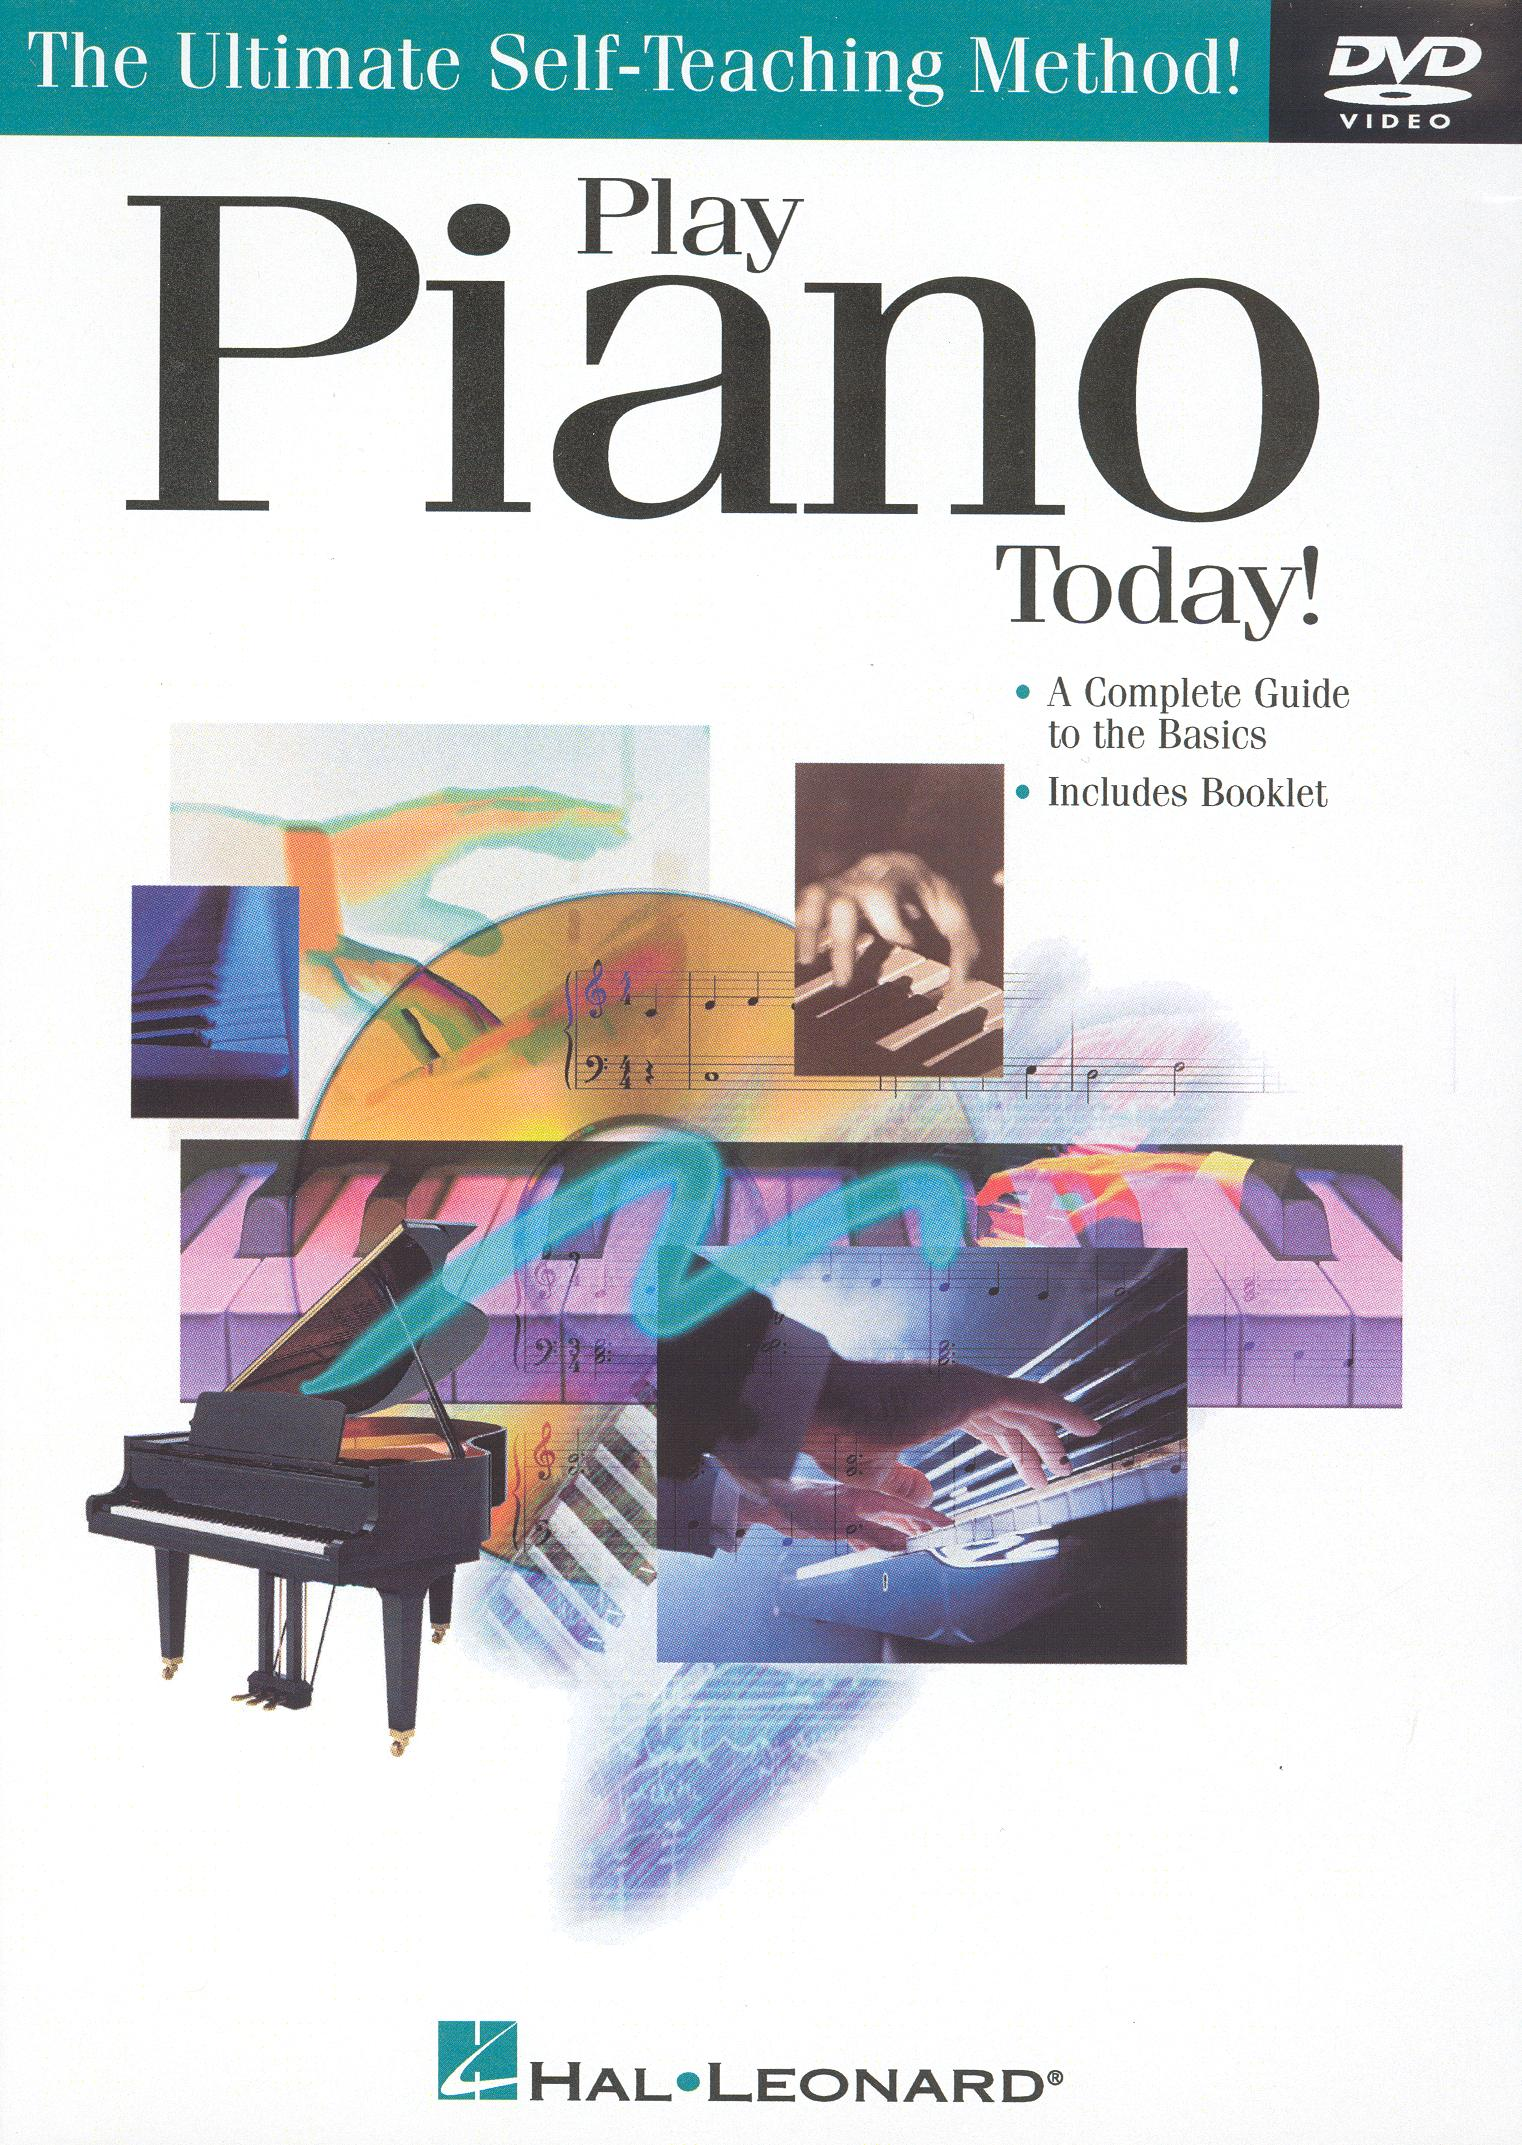 Play Piano Today!